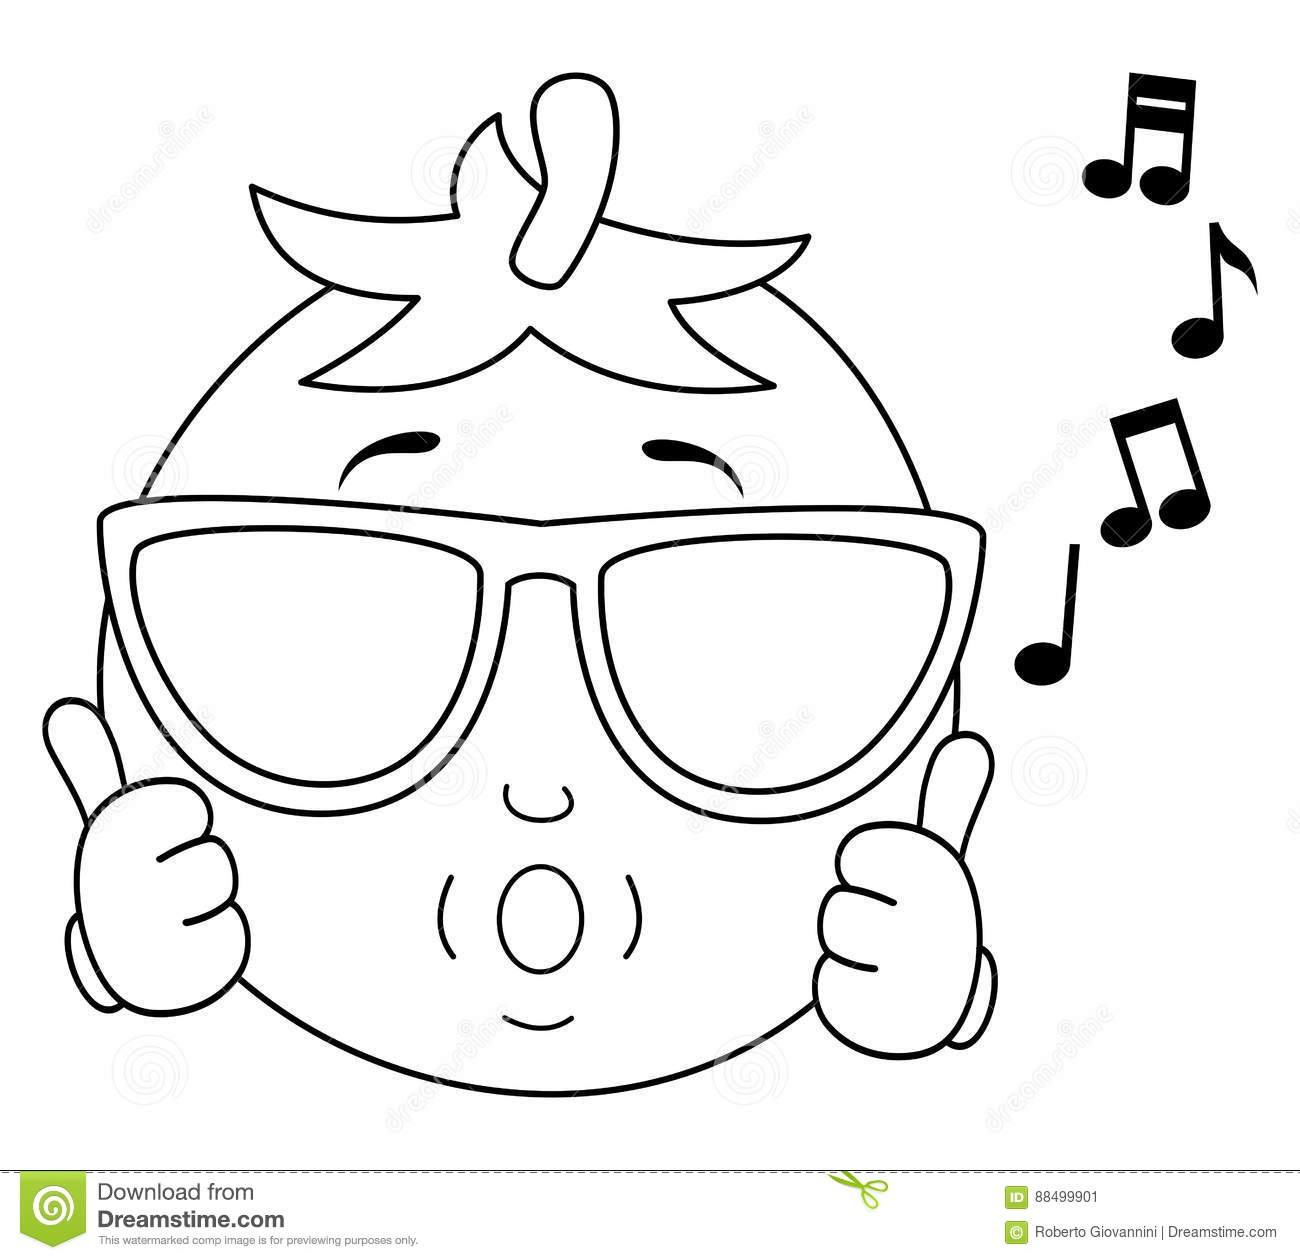 Coloring Tomato Whistling With Sunglasses Stock Vector